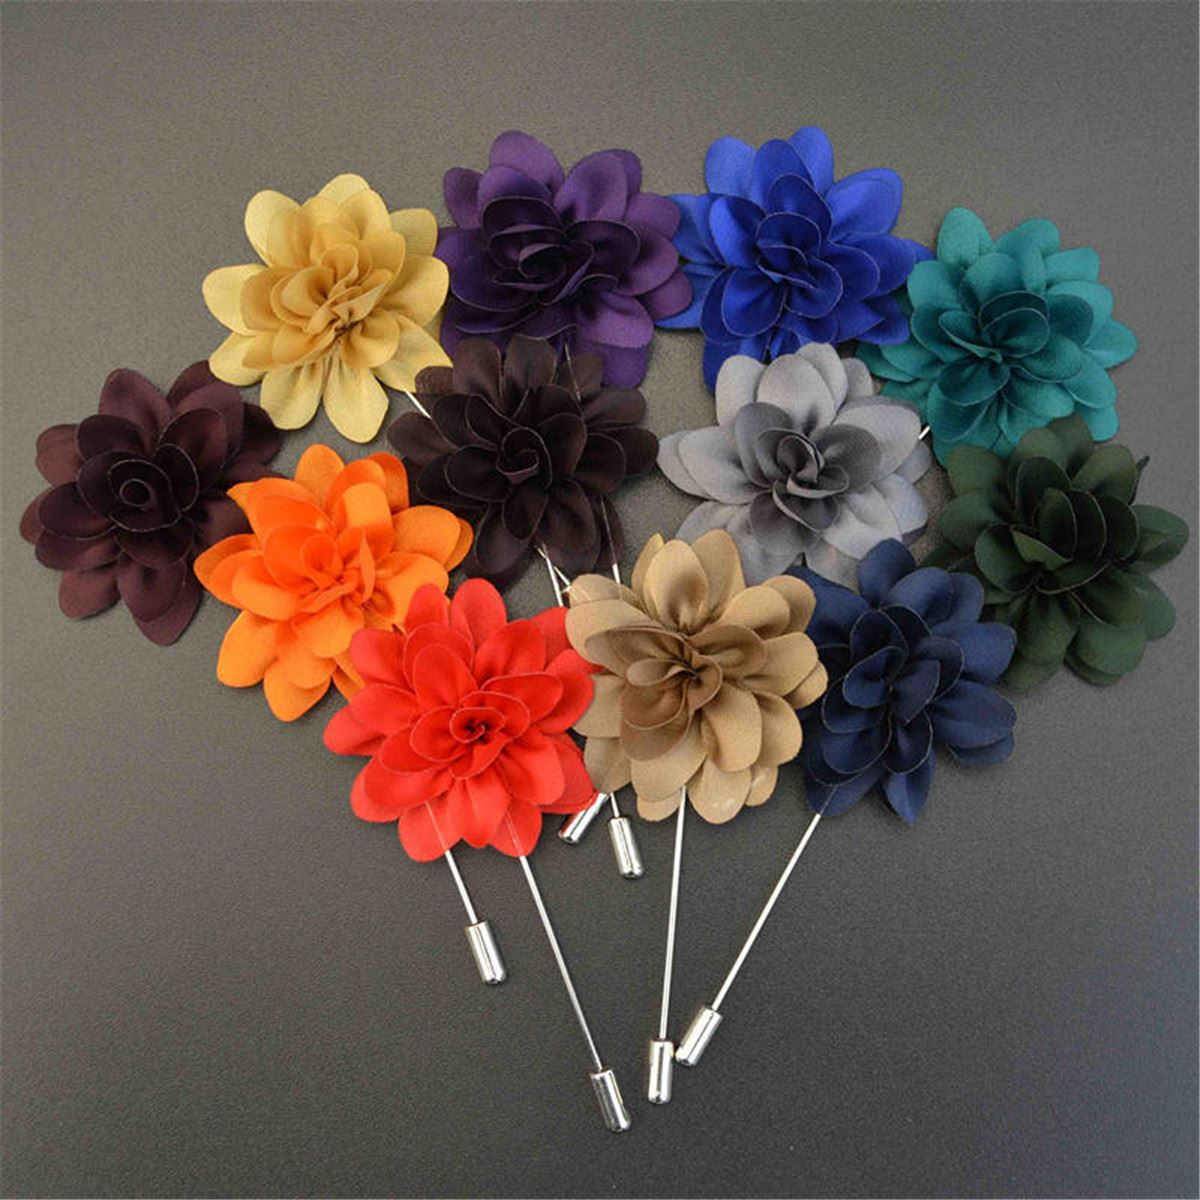 Flower Handmade Boutonniere Brooches New 2015 Promotion Fashion Lapel Fabric Pin Stick Mens Accessories 12 Colors For Selection(China (Mainland))